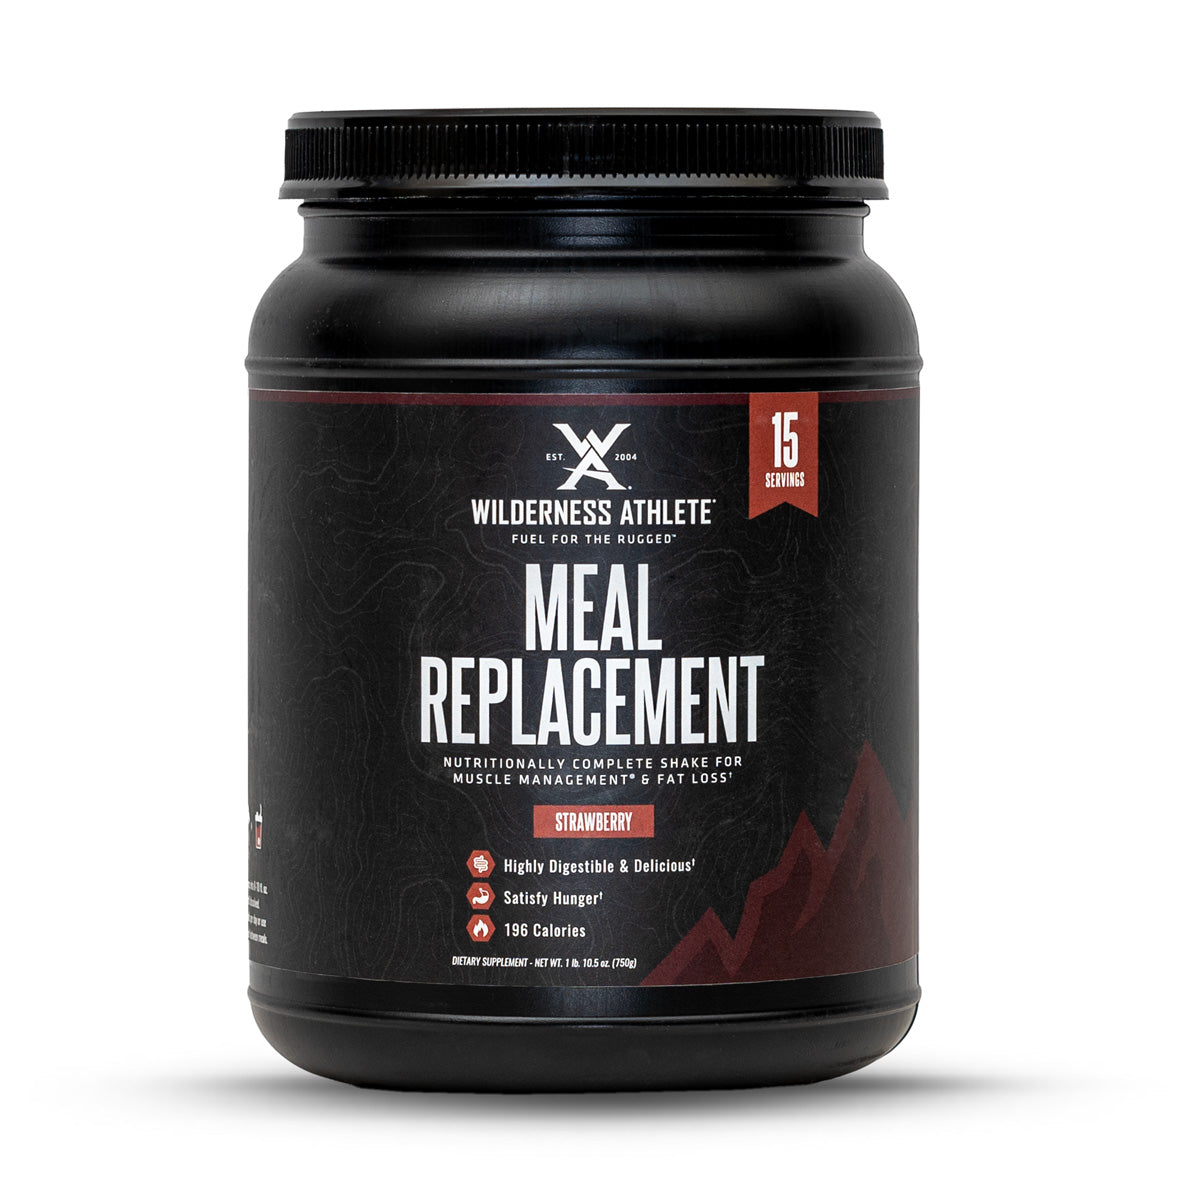 Meal Replacement Shake - Wilderness Athlete